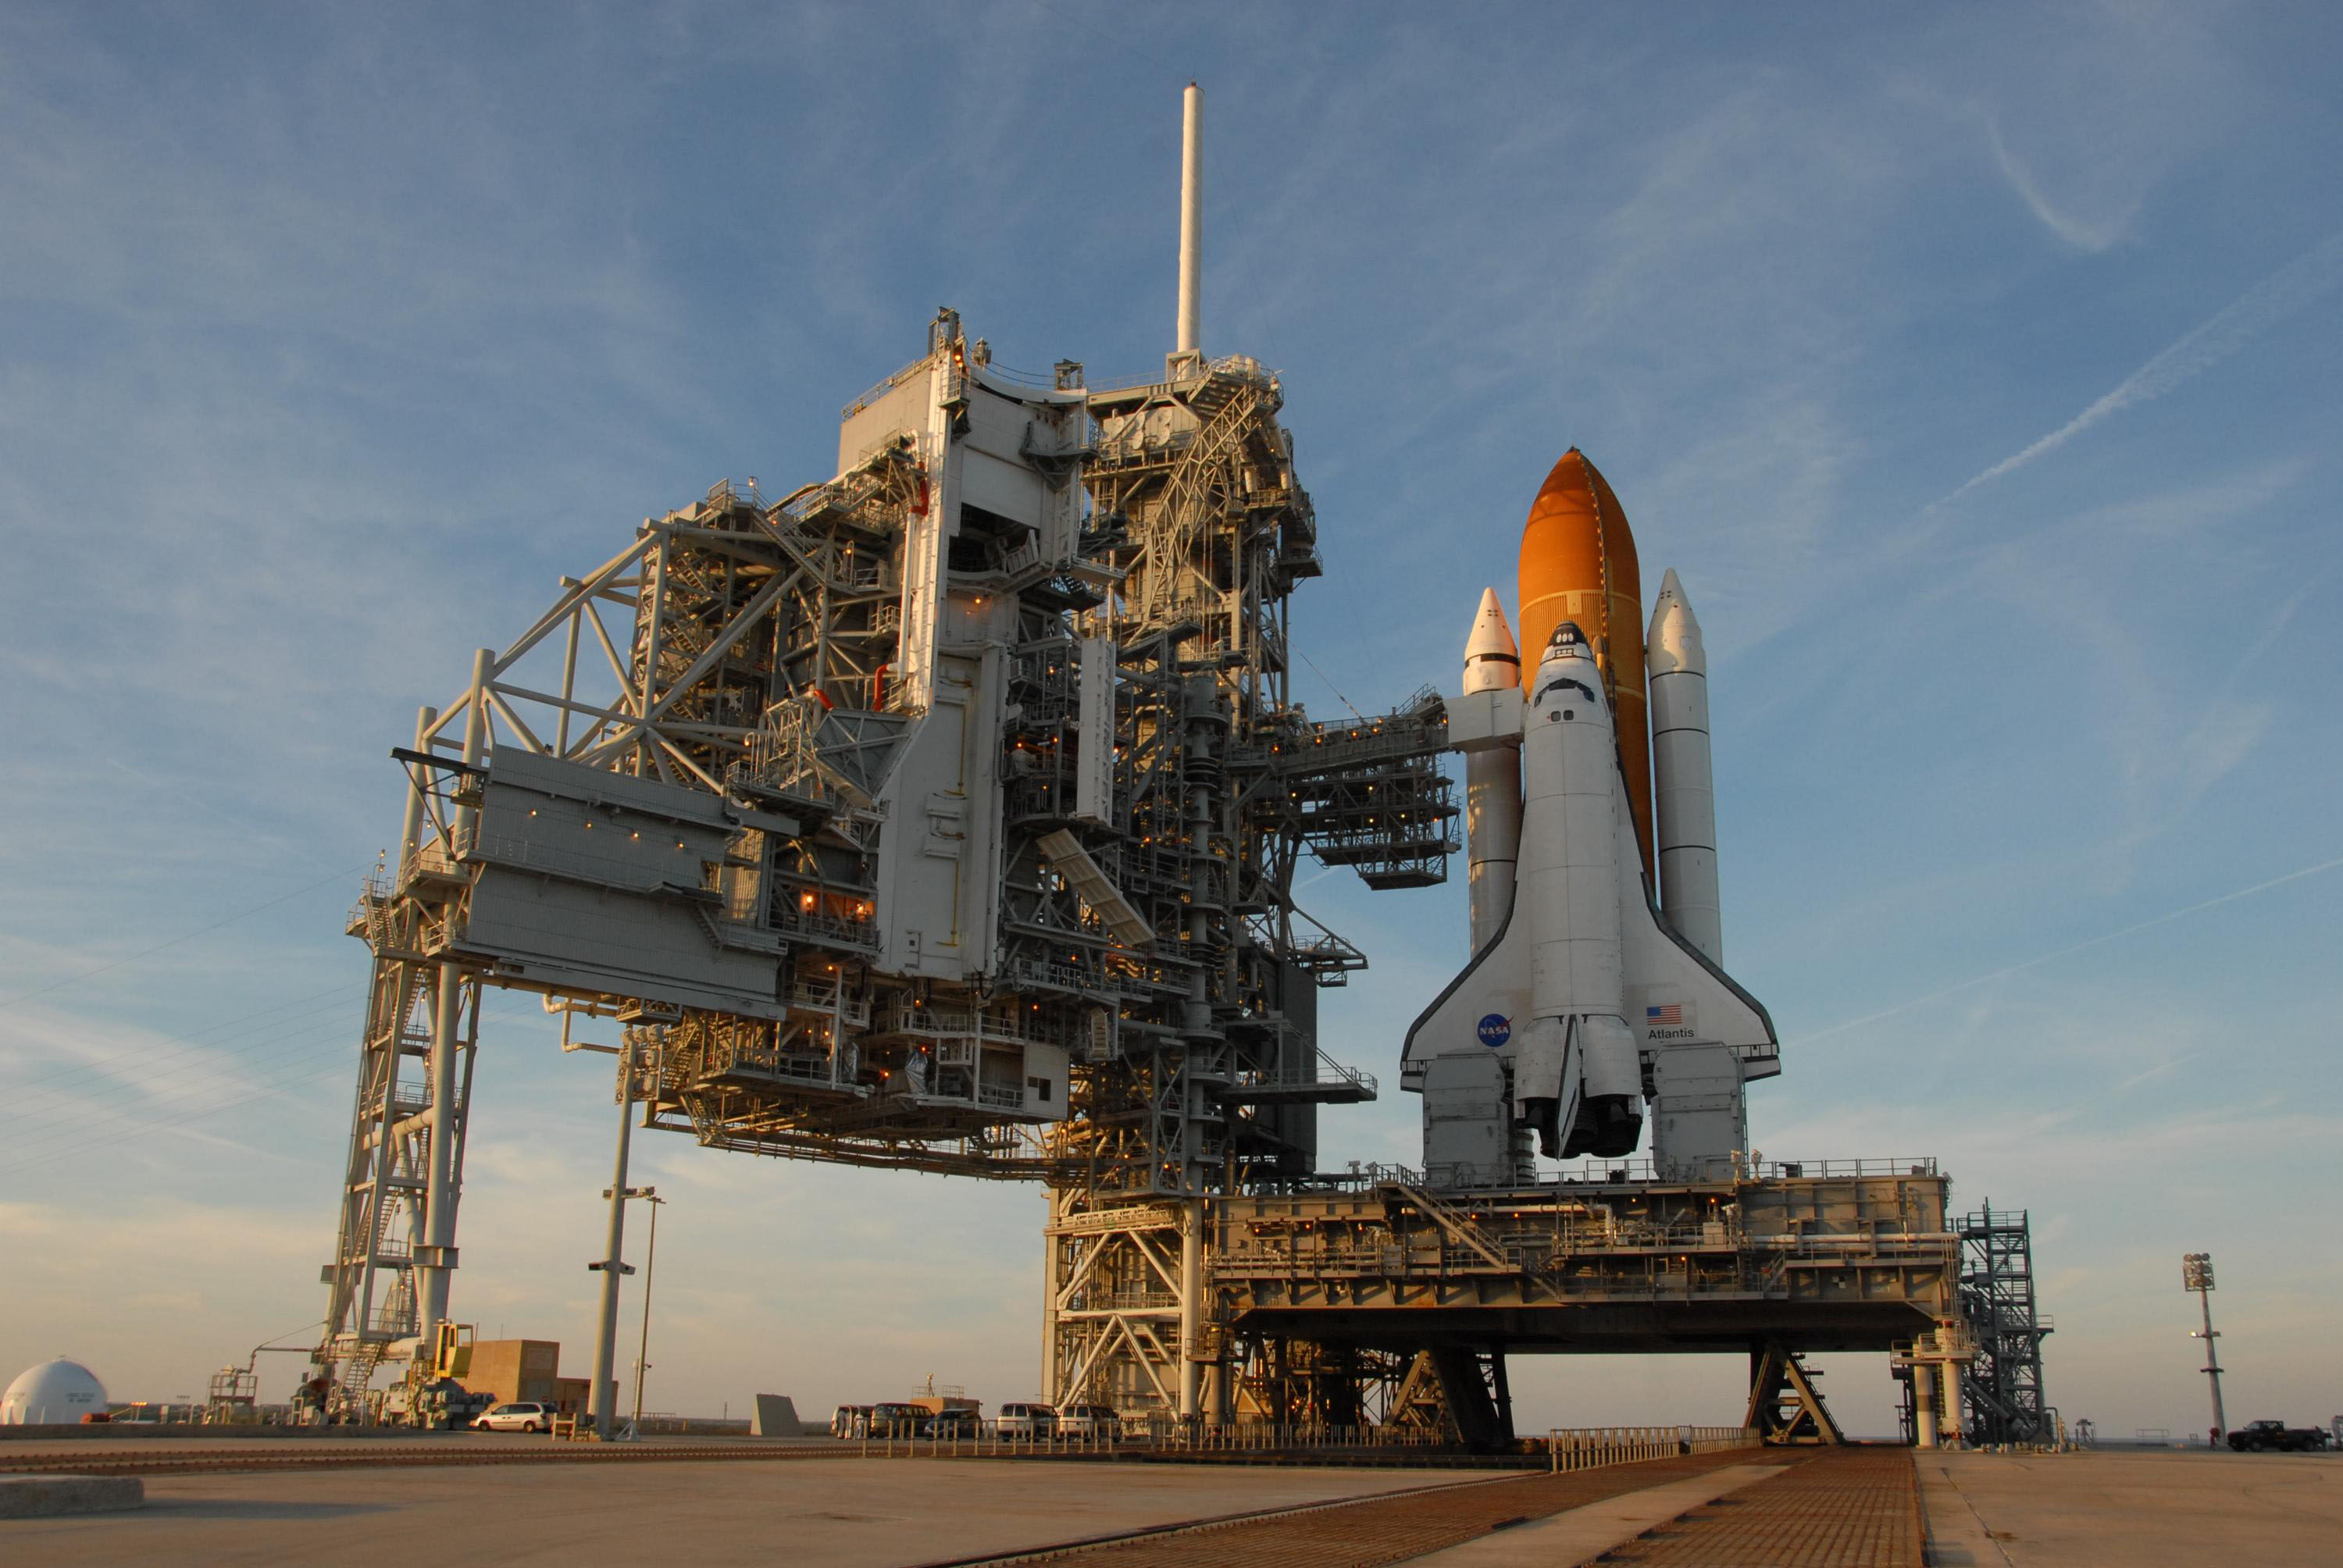 space shuttle on launchpad - photo #2